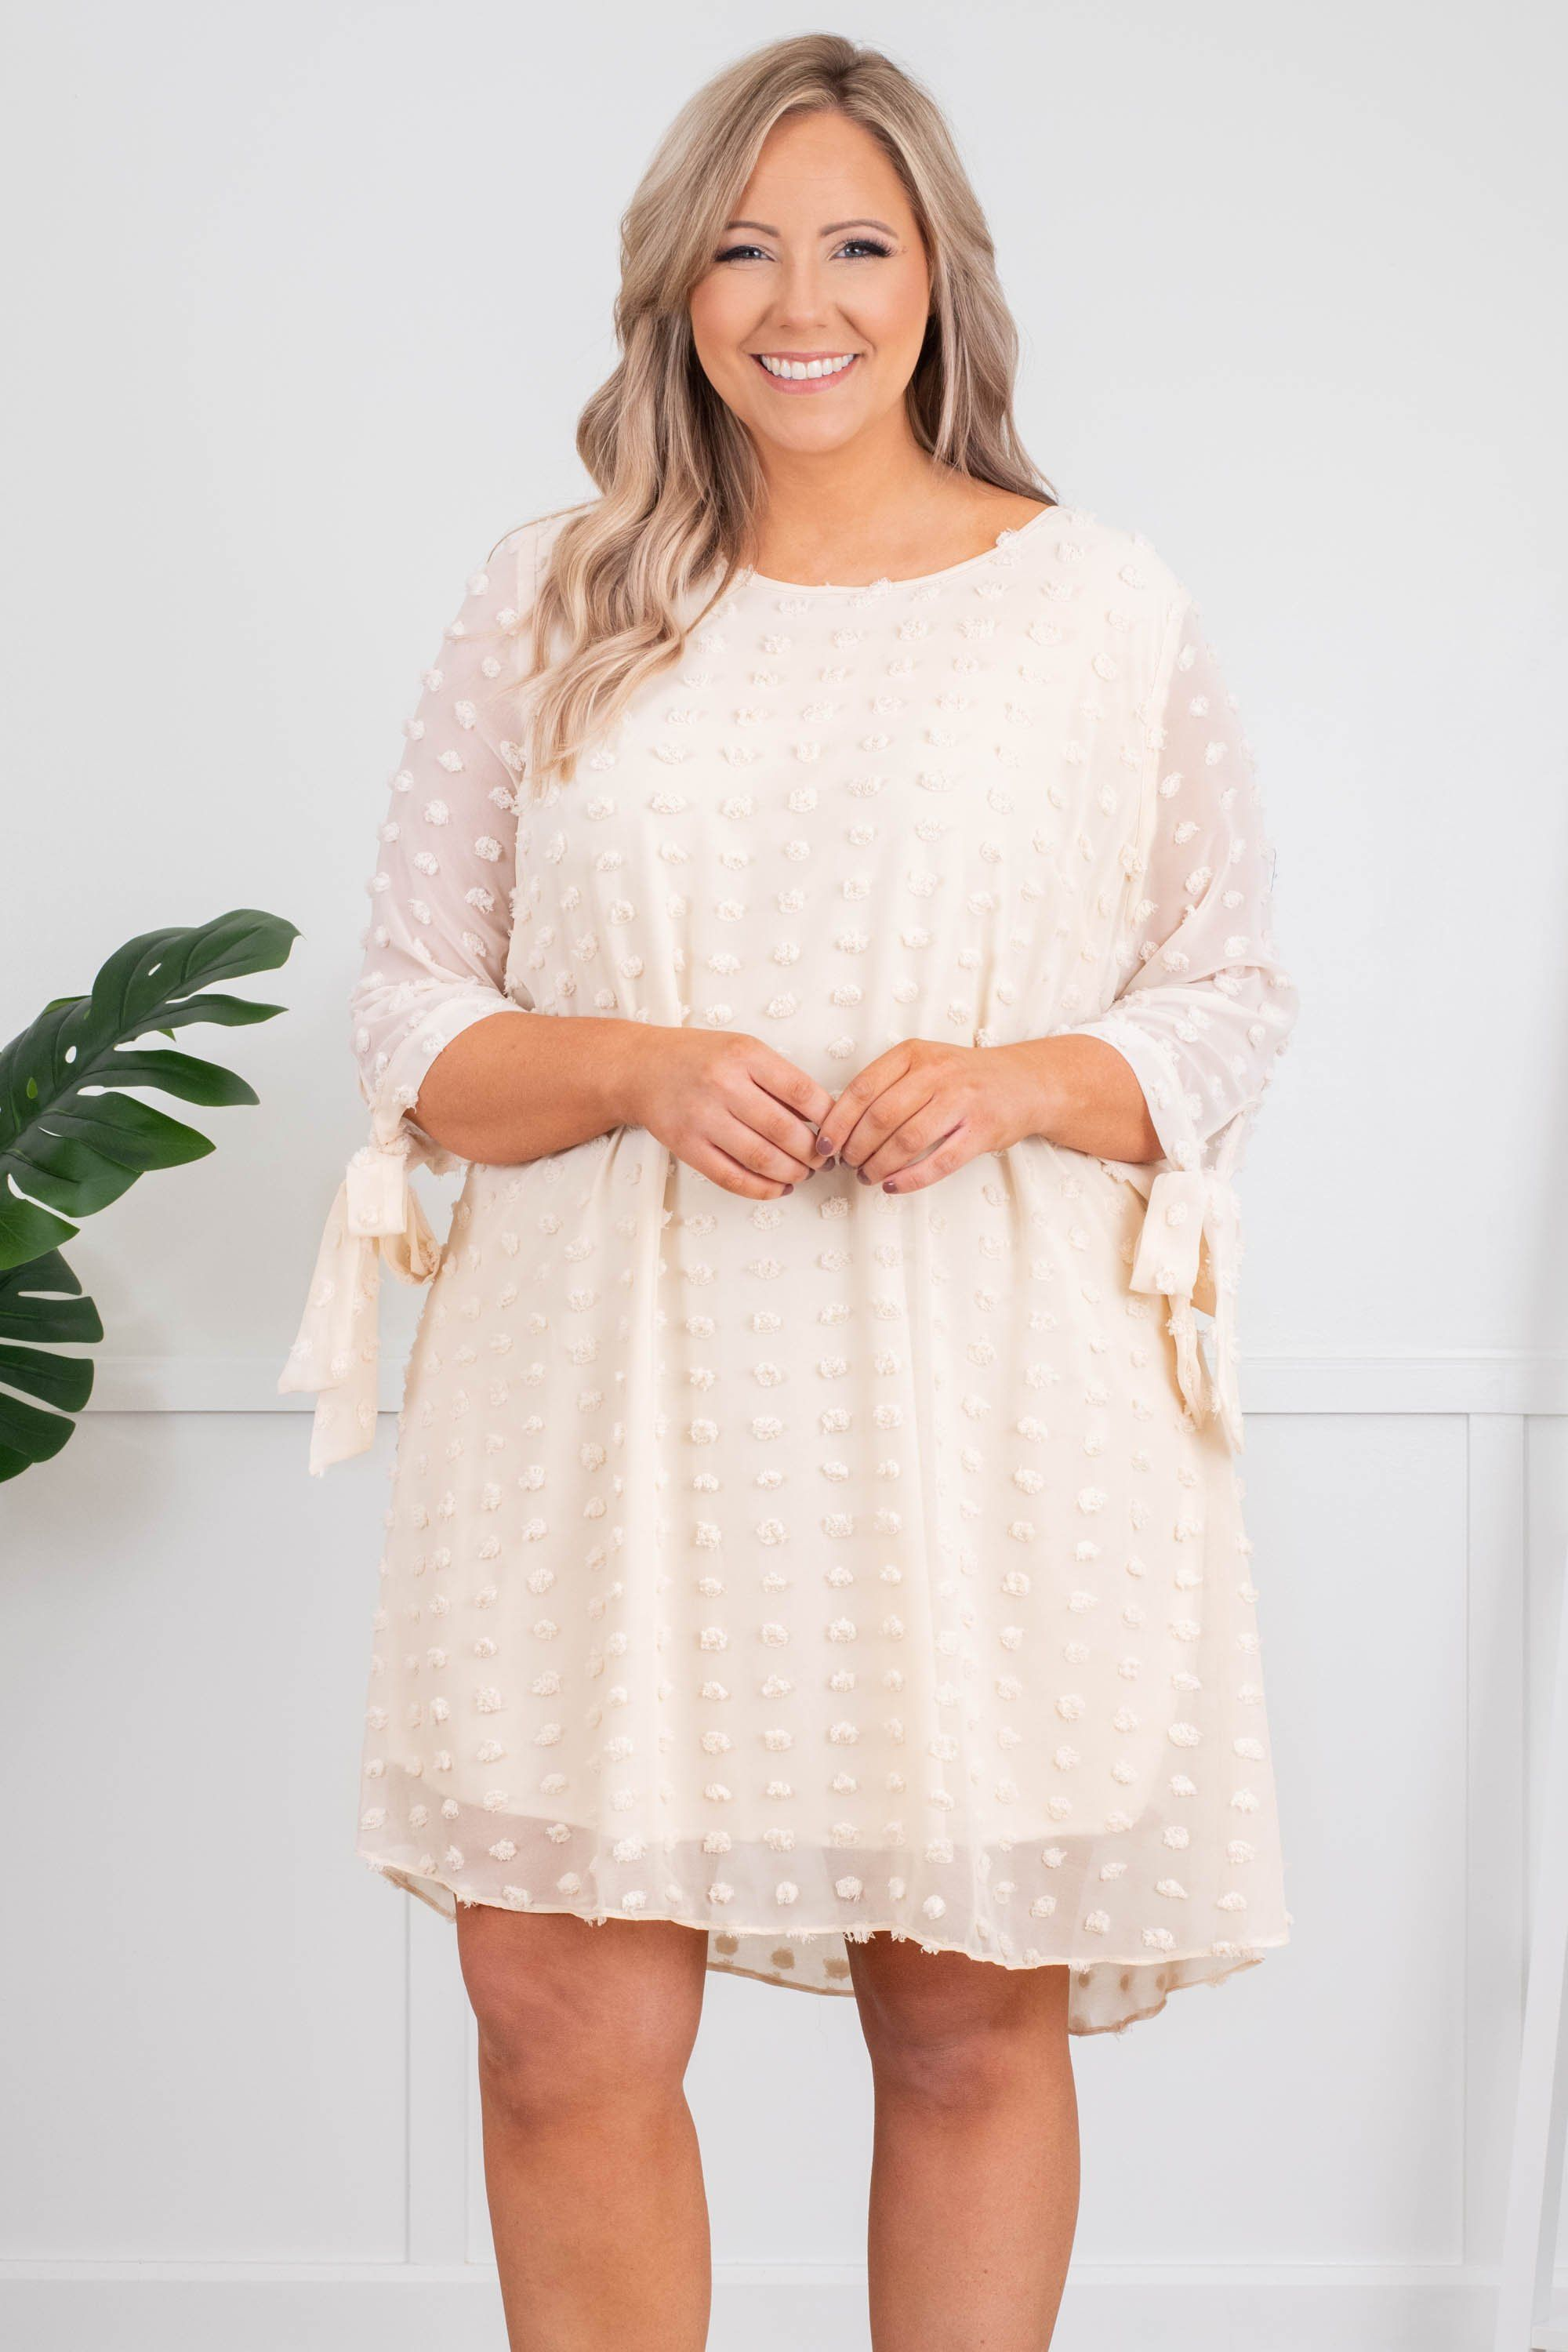 Know The Ropes Dress Off White 3x In 2021 Cocktail Dress Curvy Plus Size Party Dresses Cocktail Dress Classy [ 3000 x 2000 Pixel ]